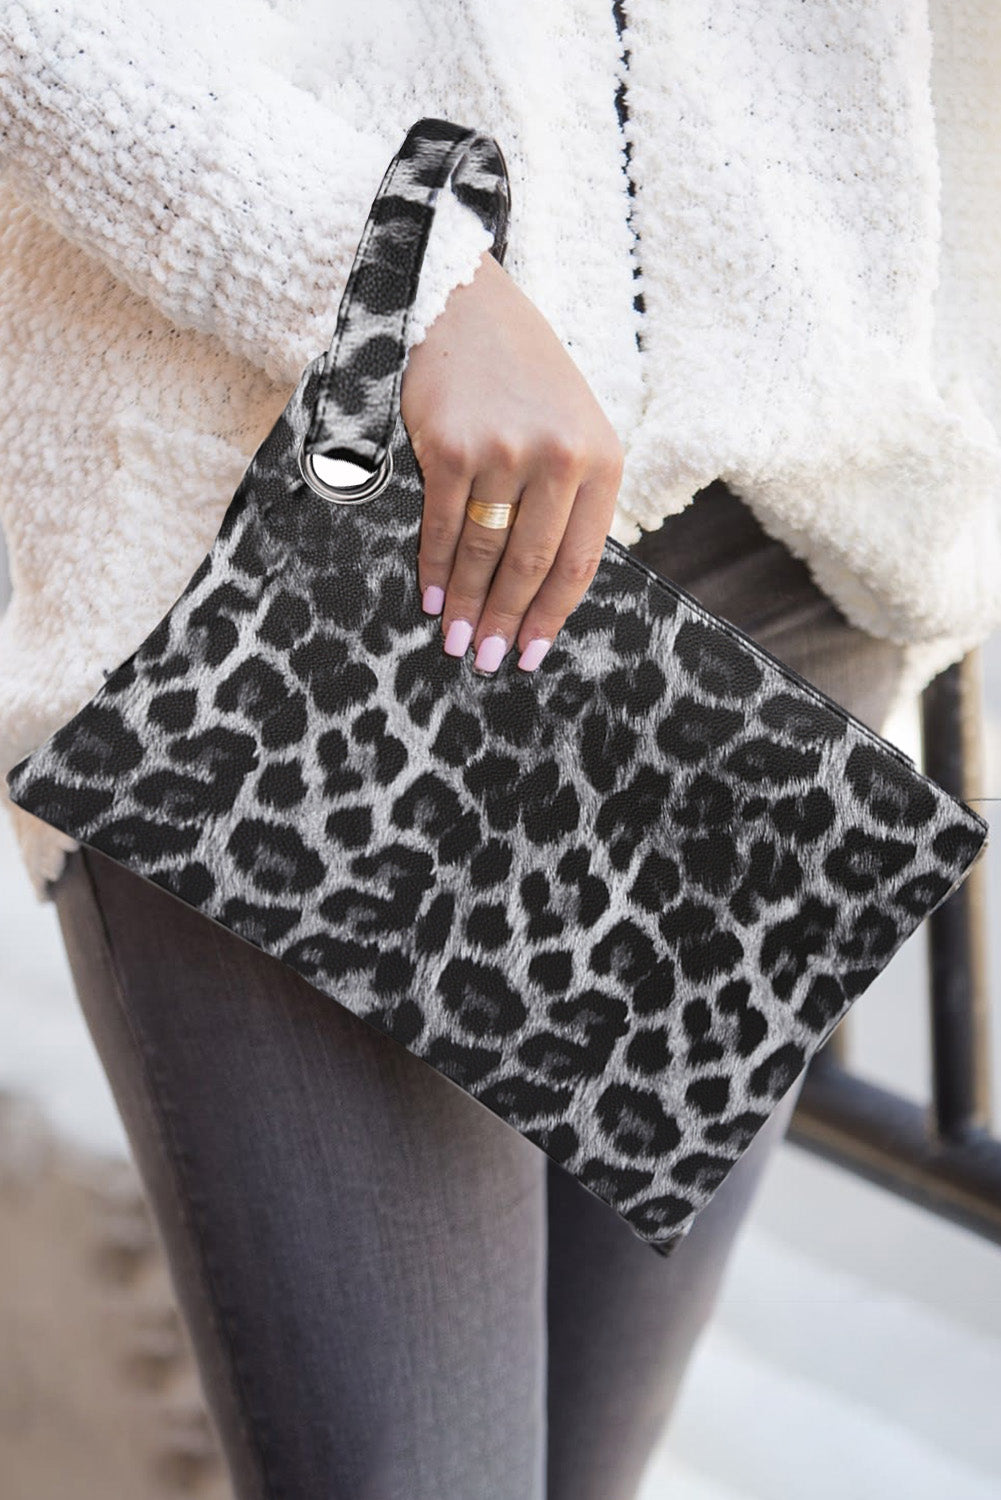 Gray Trendy Leopard Clutch Bags Discount Designer Fashion Clothes Shoes Bags Women Men Kids Children Black Owned Business